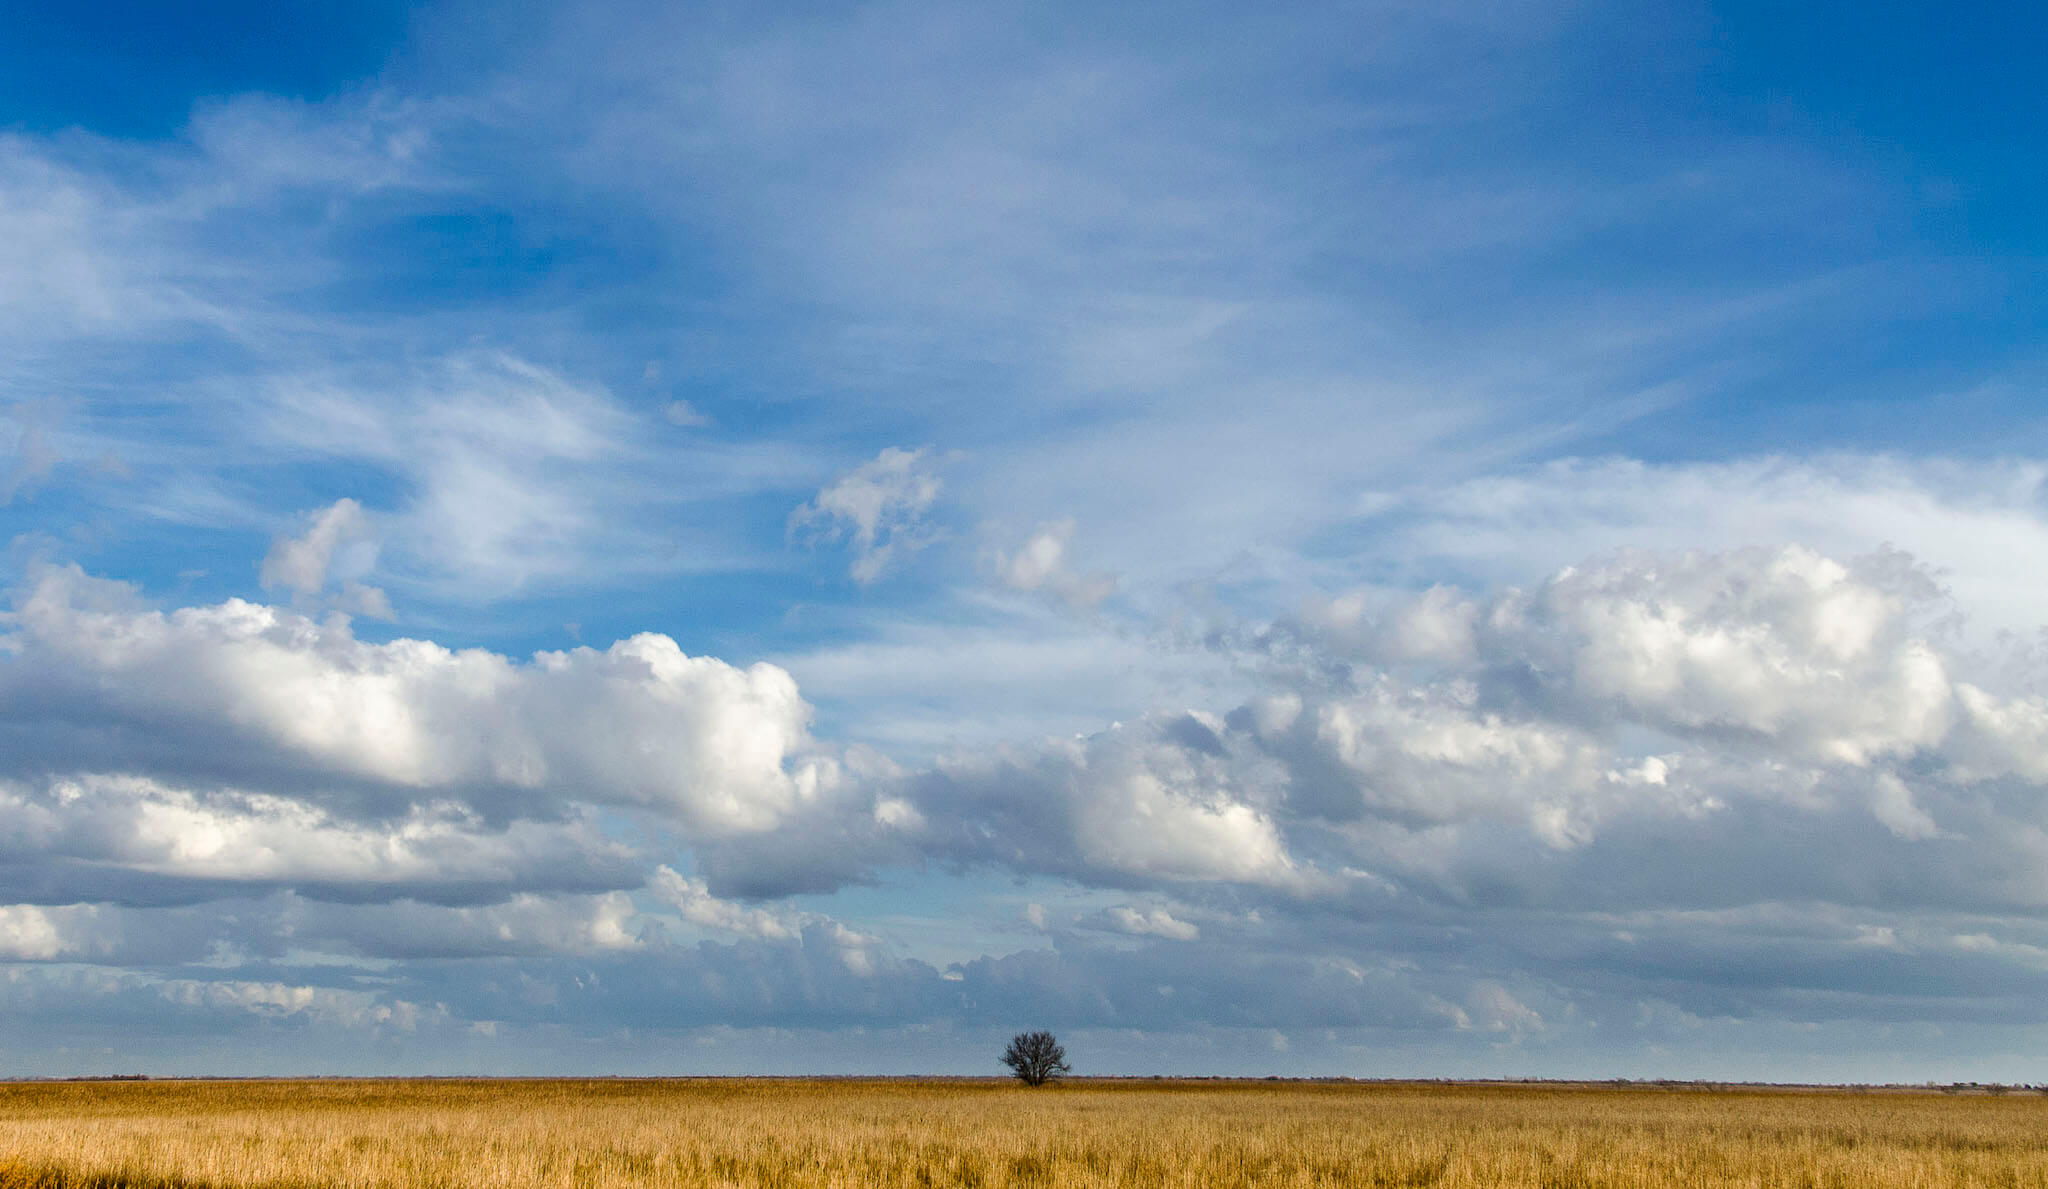 A lone tree is visible in the distance of a wheat colored field in the Camargue. There are low lying clouds against partially blue sky.